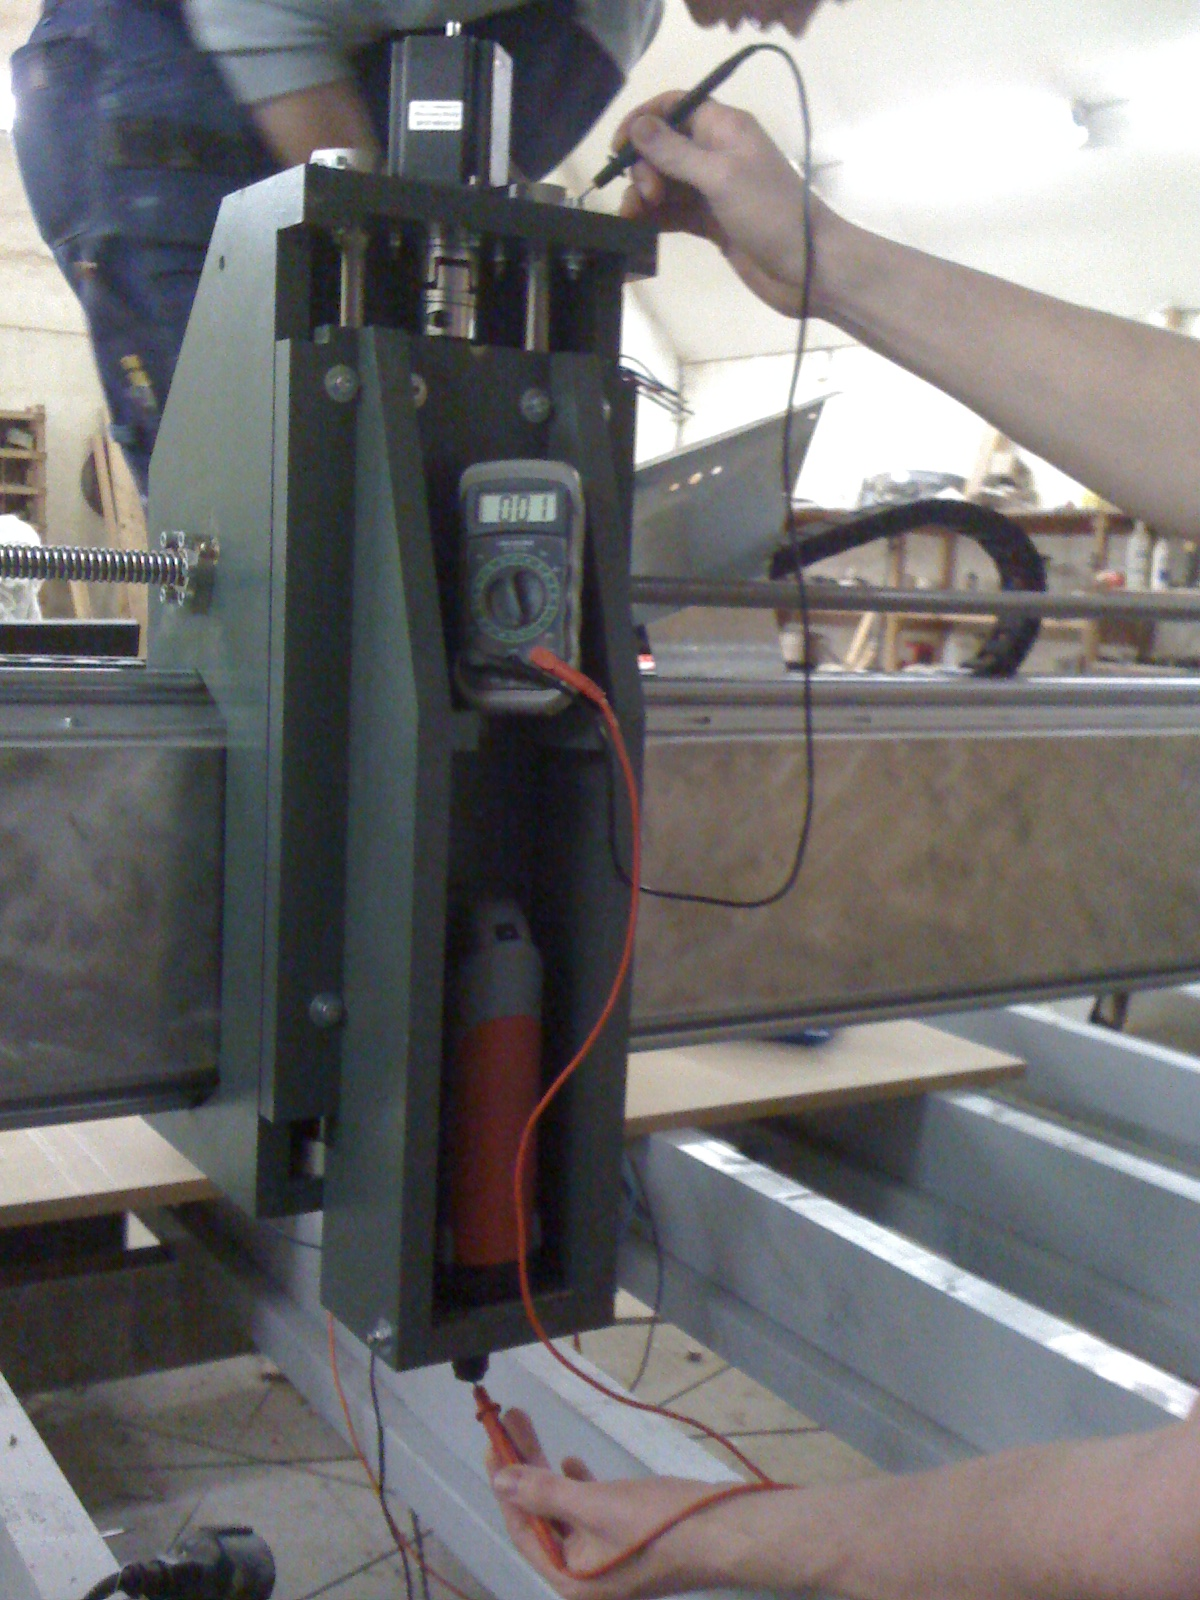 We used the HDF-Alu laminate as a conductor for automatic part localization